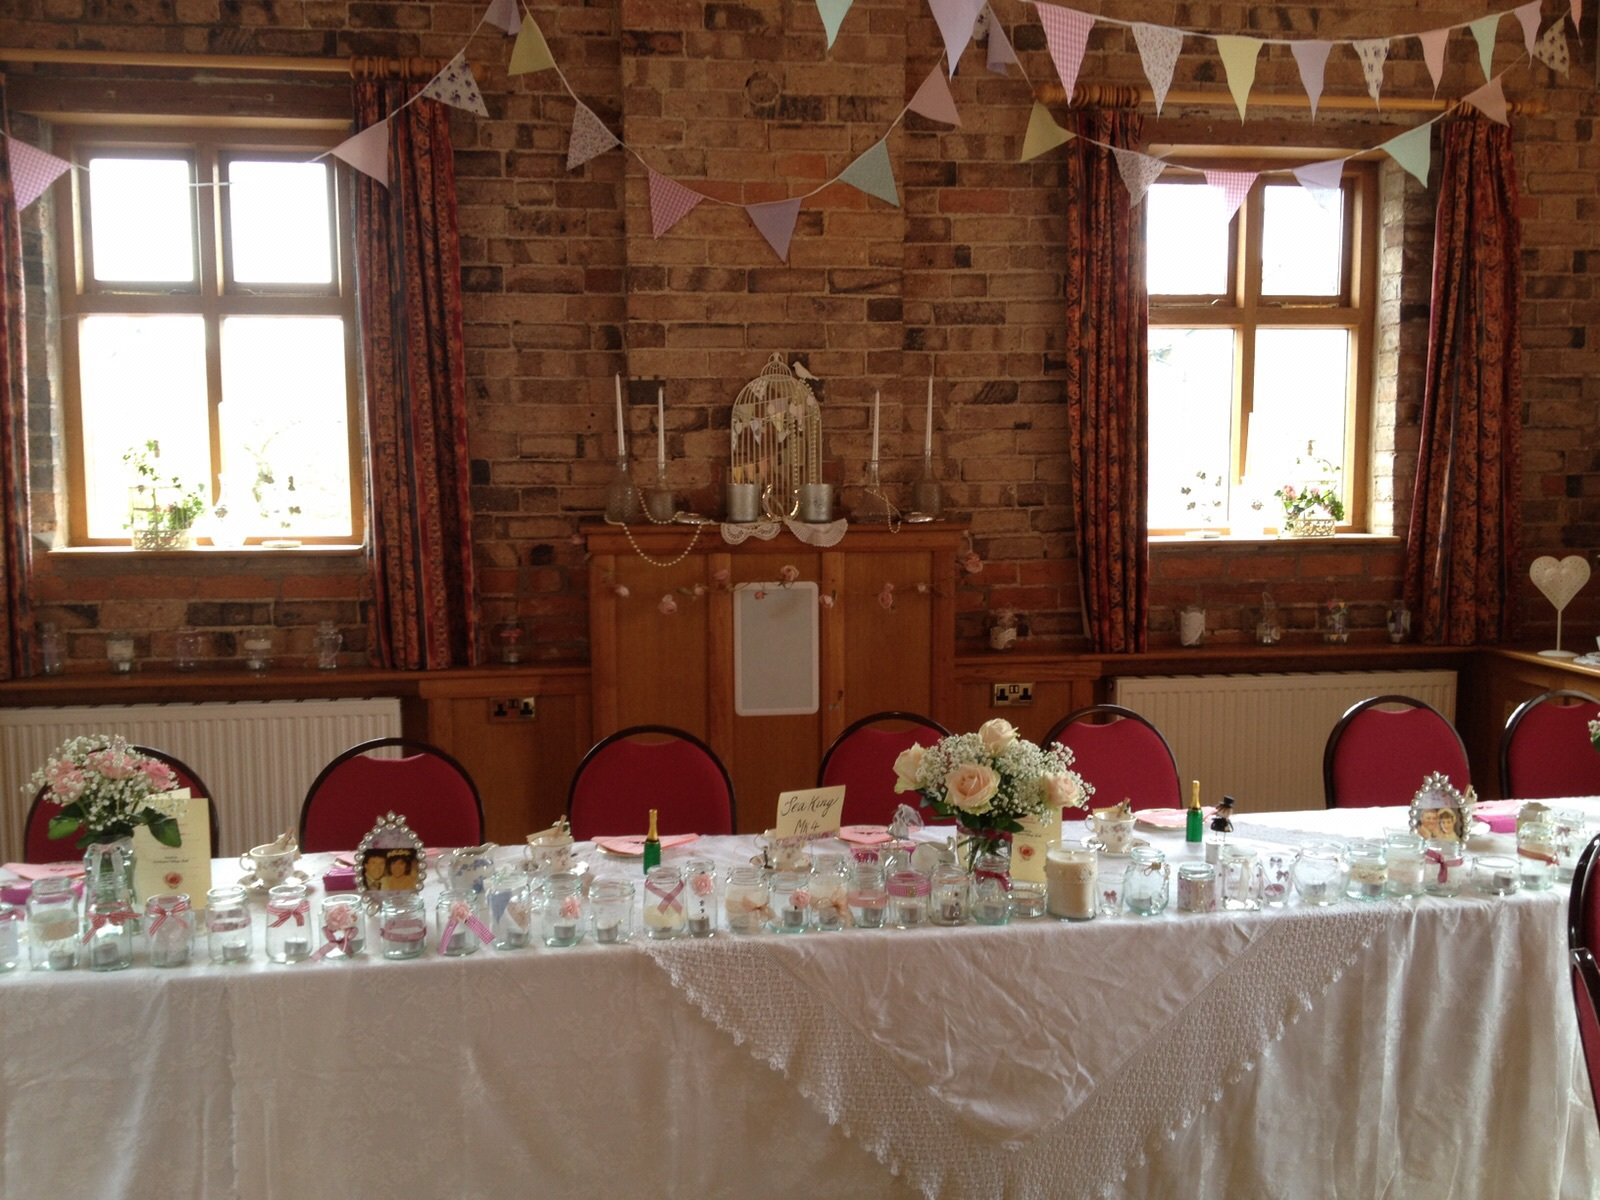 Top Table at Vintage wedding in village hall